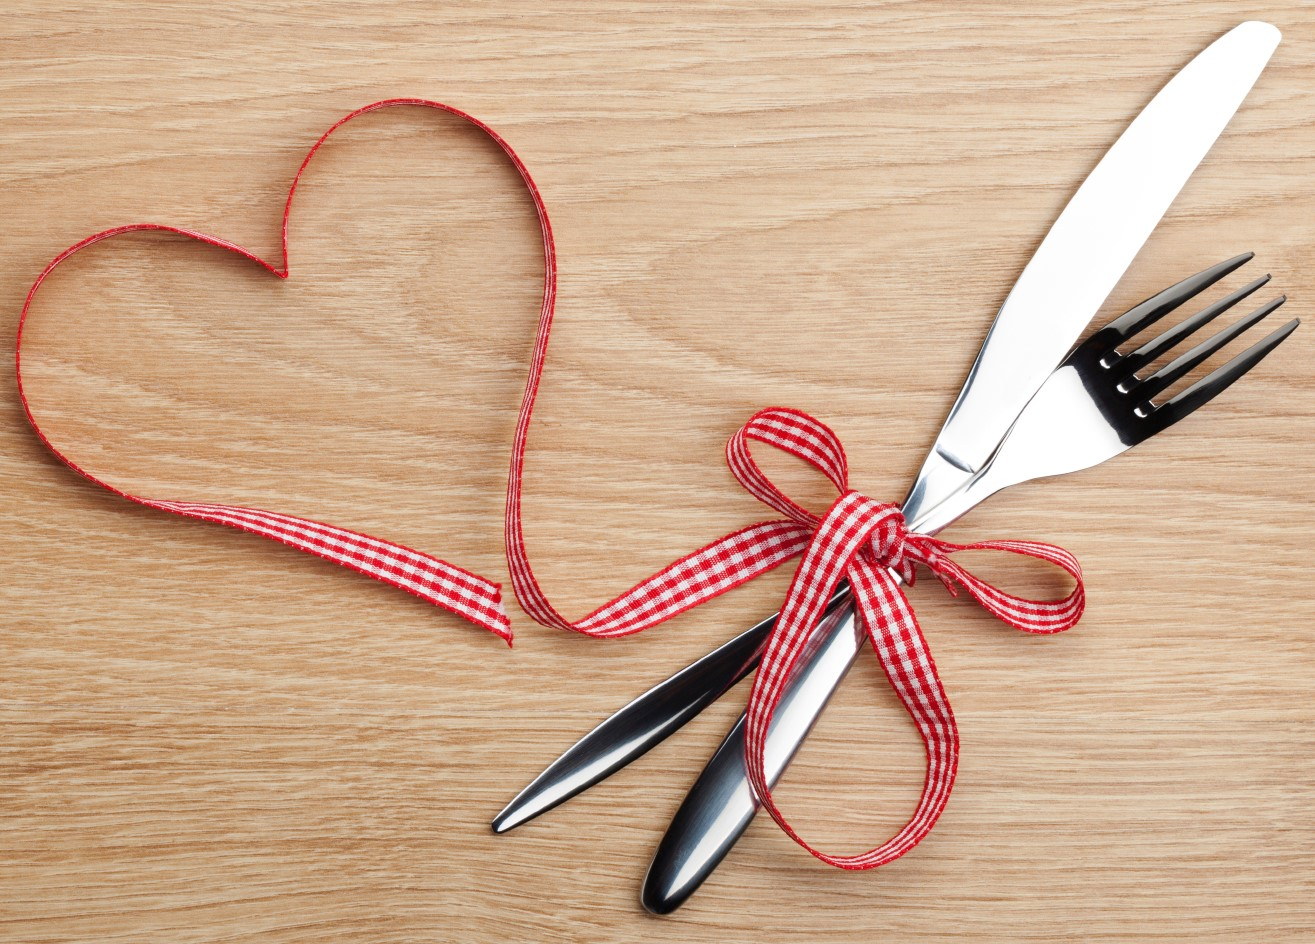 Valentine's Day heart shaped red ribbon and silverware. On wooden table background